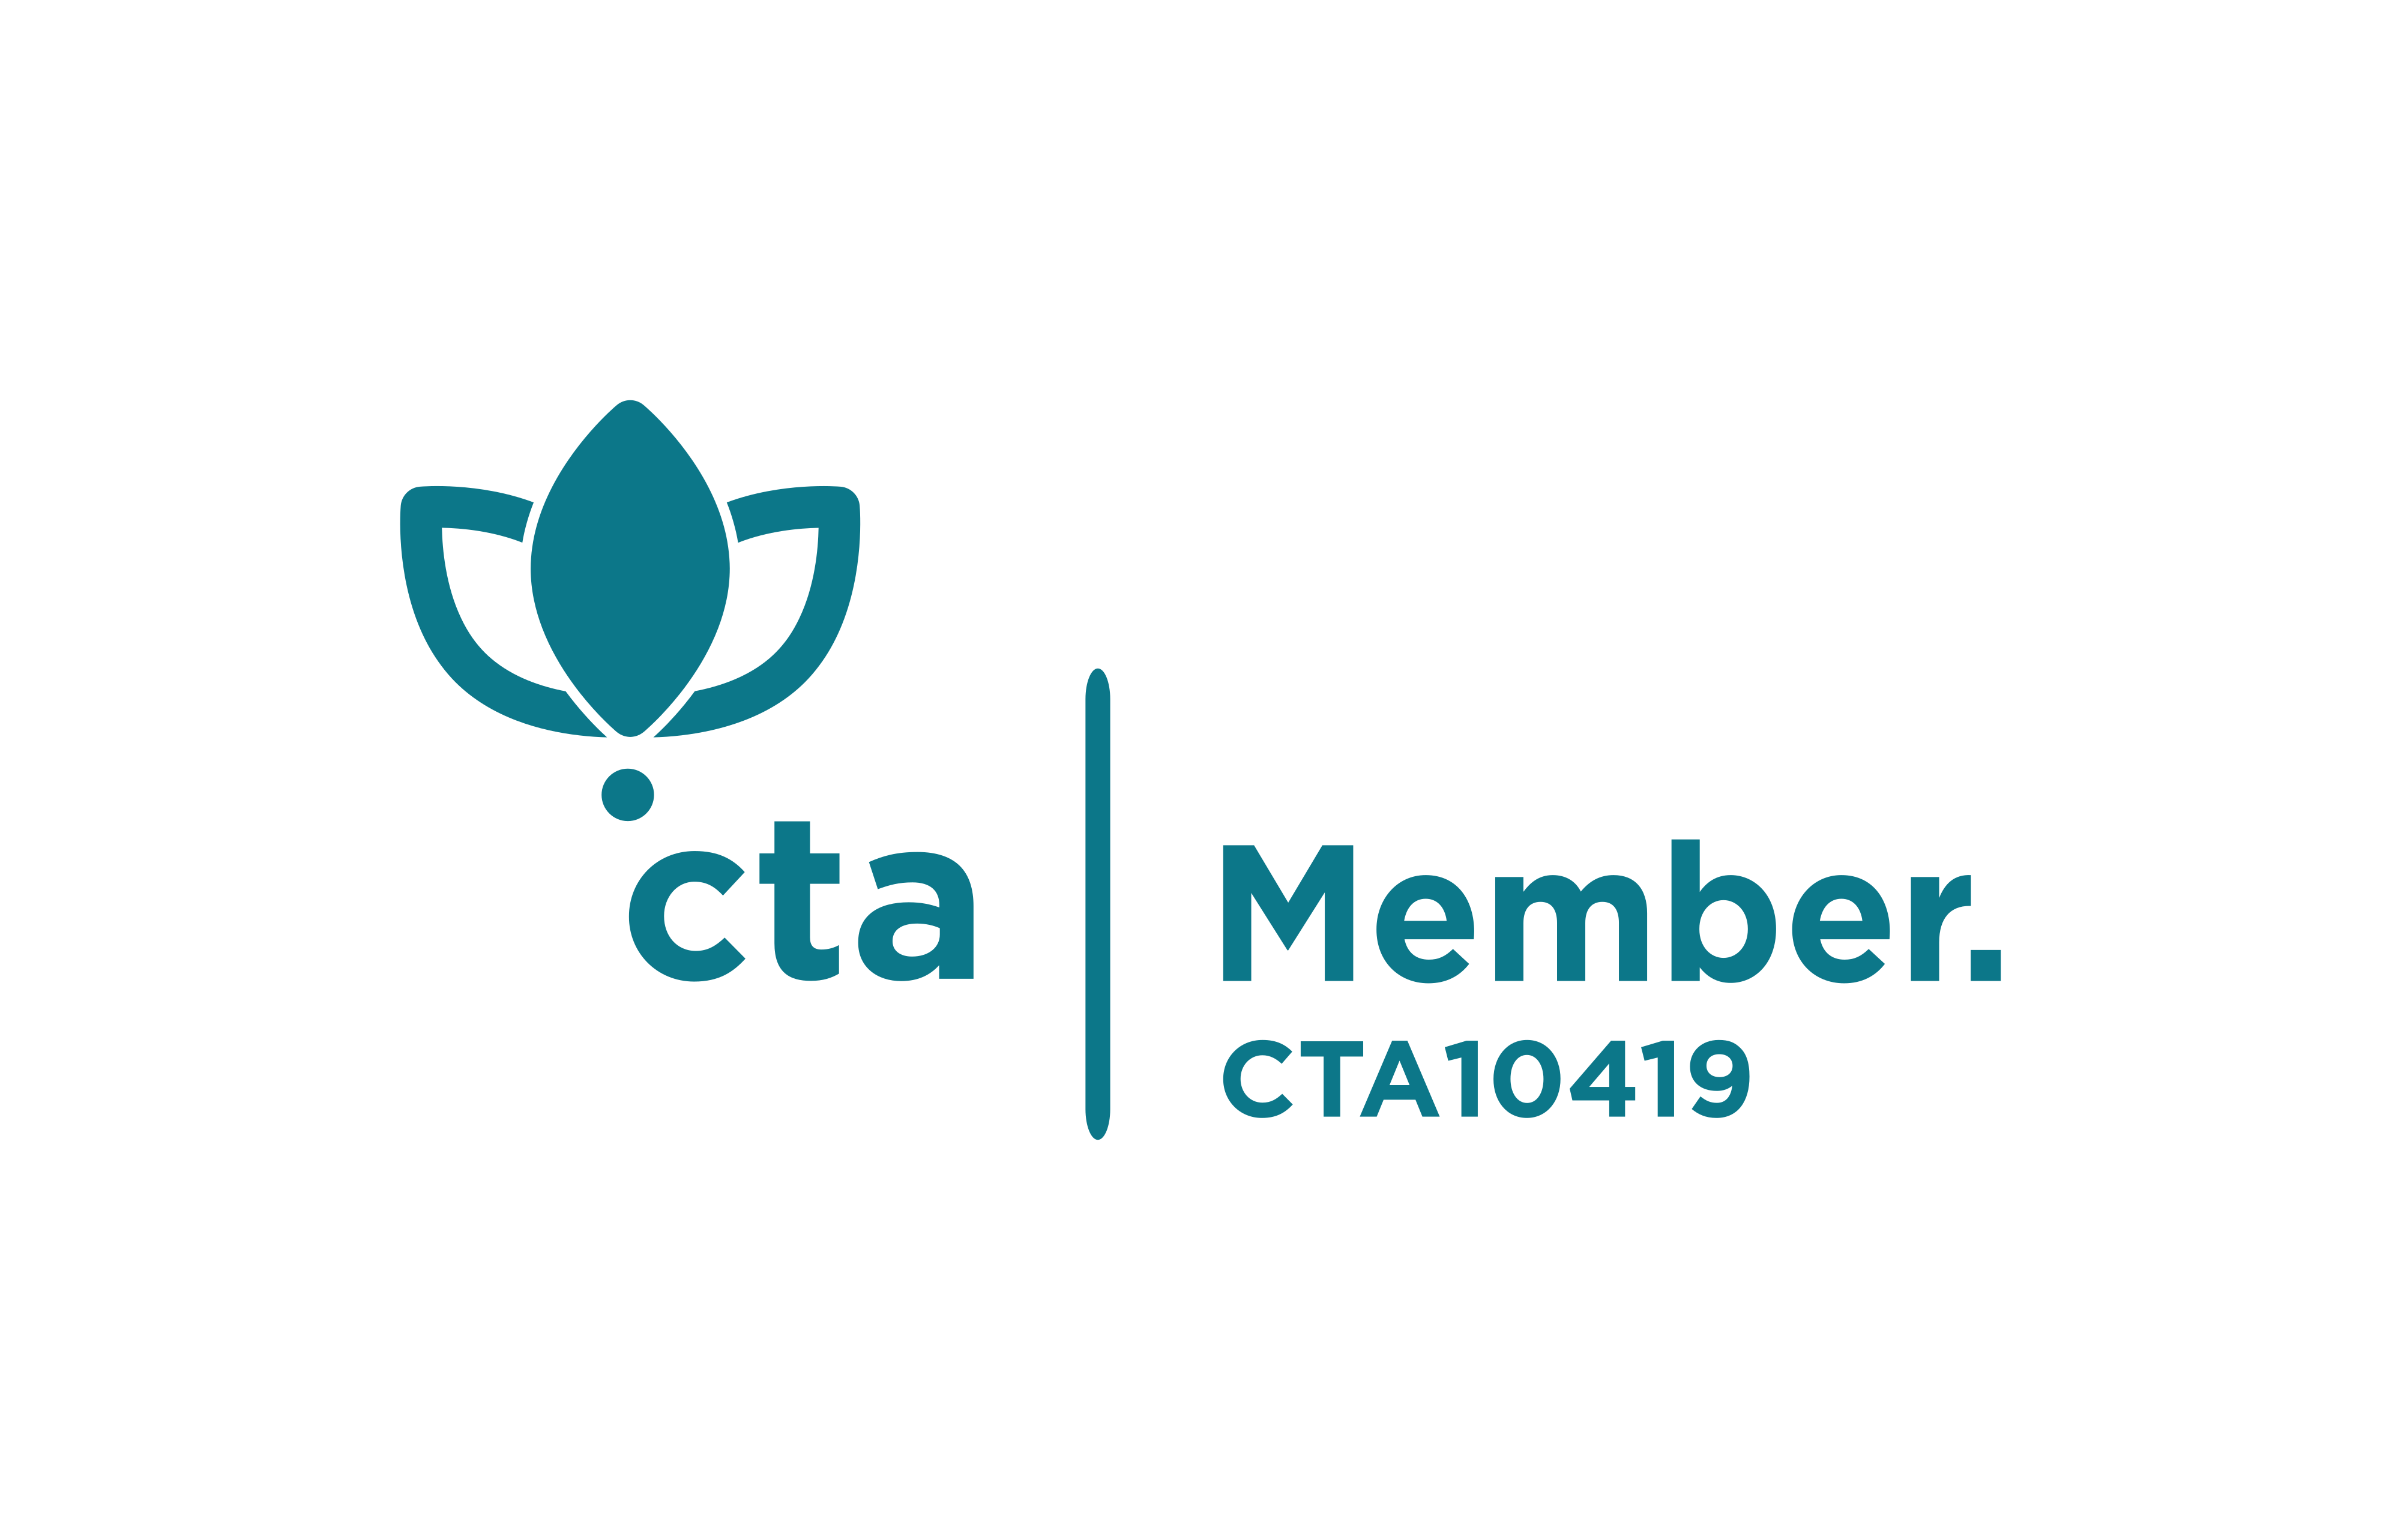 CiiTECH establishes itself as a continued CTA Member